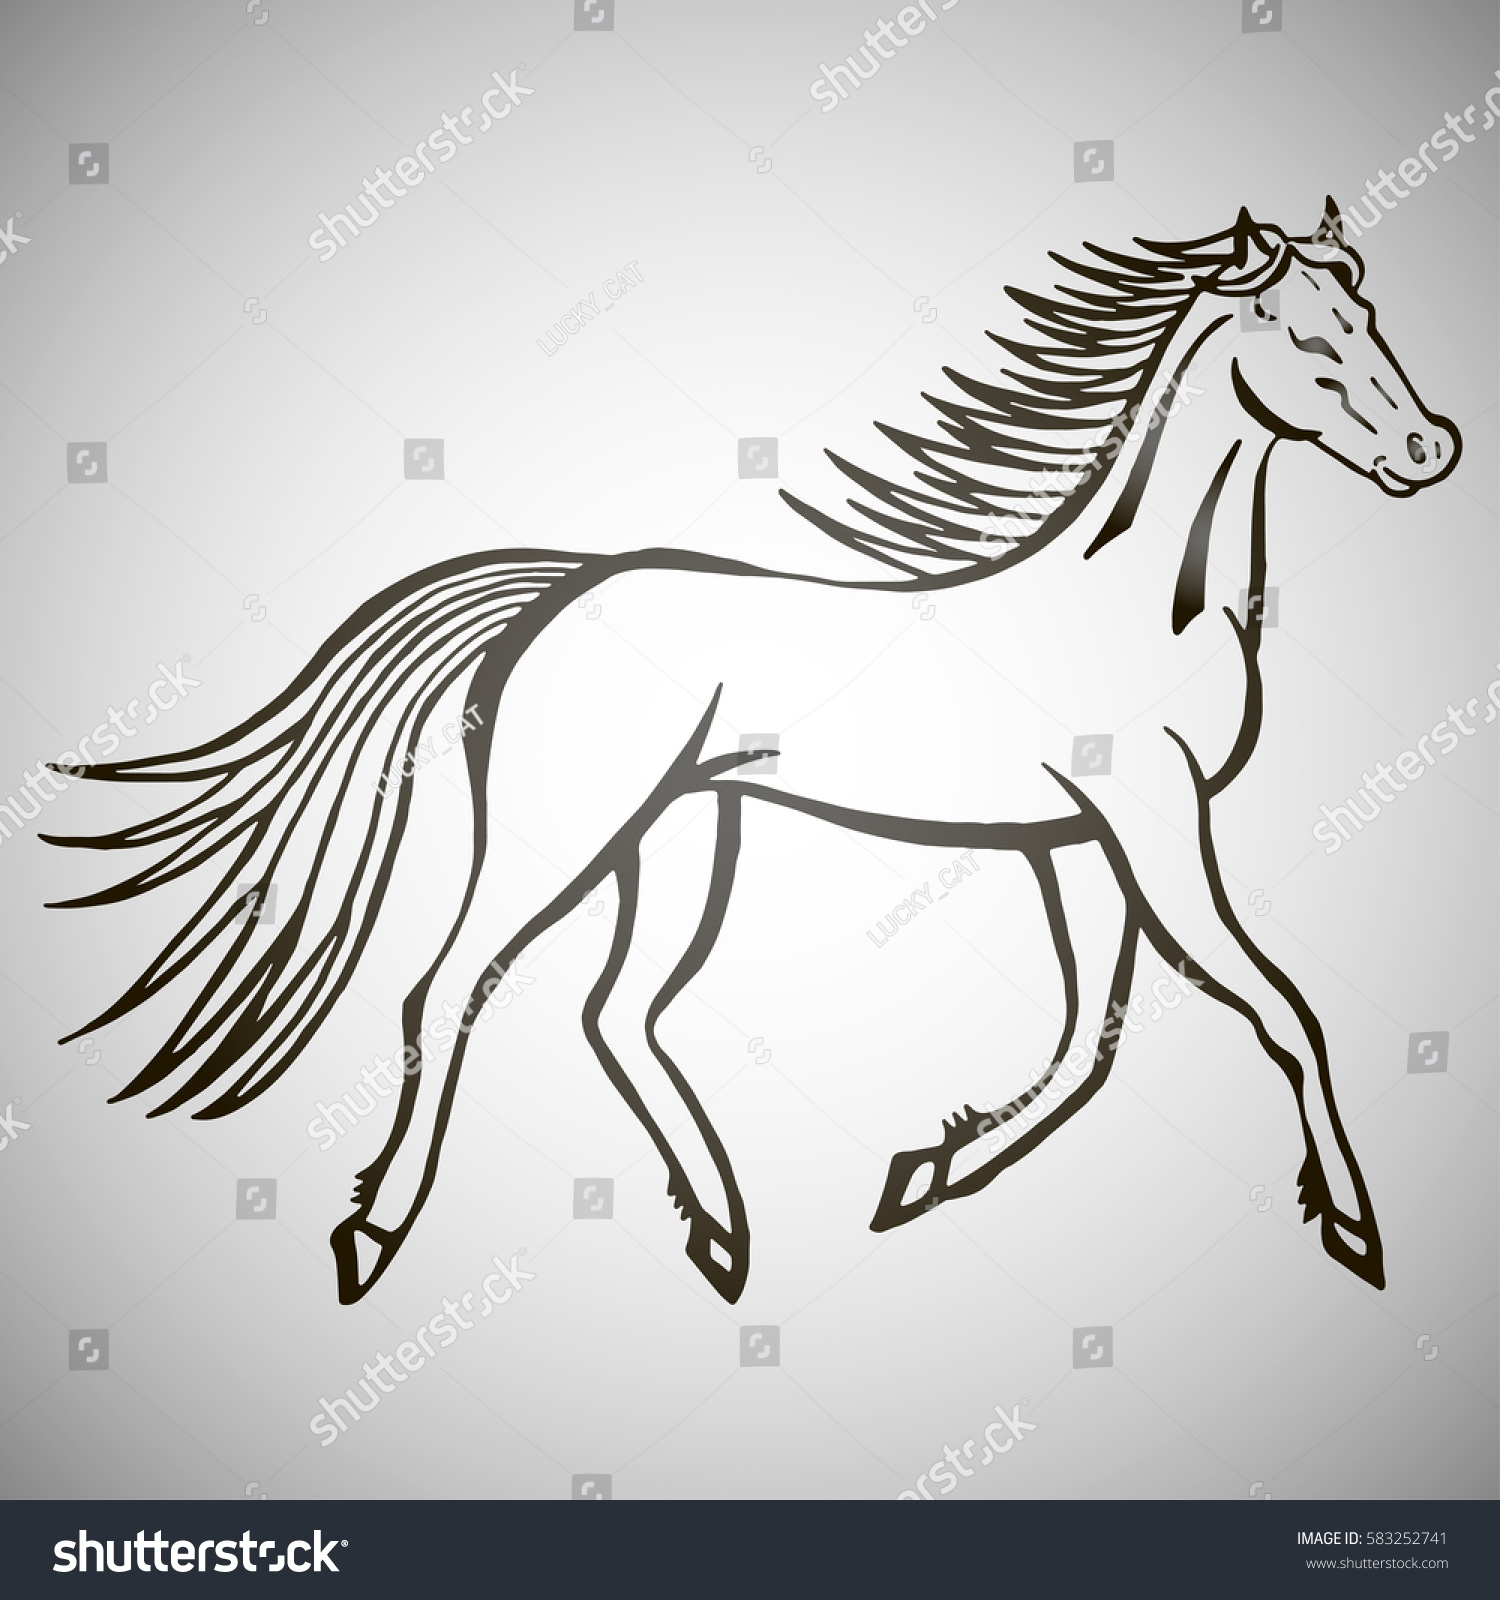 Vector De Stock Libre De Regalias Sobre Illustration Hand Drawn Running Wild Horse583252741